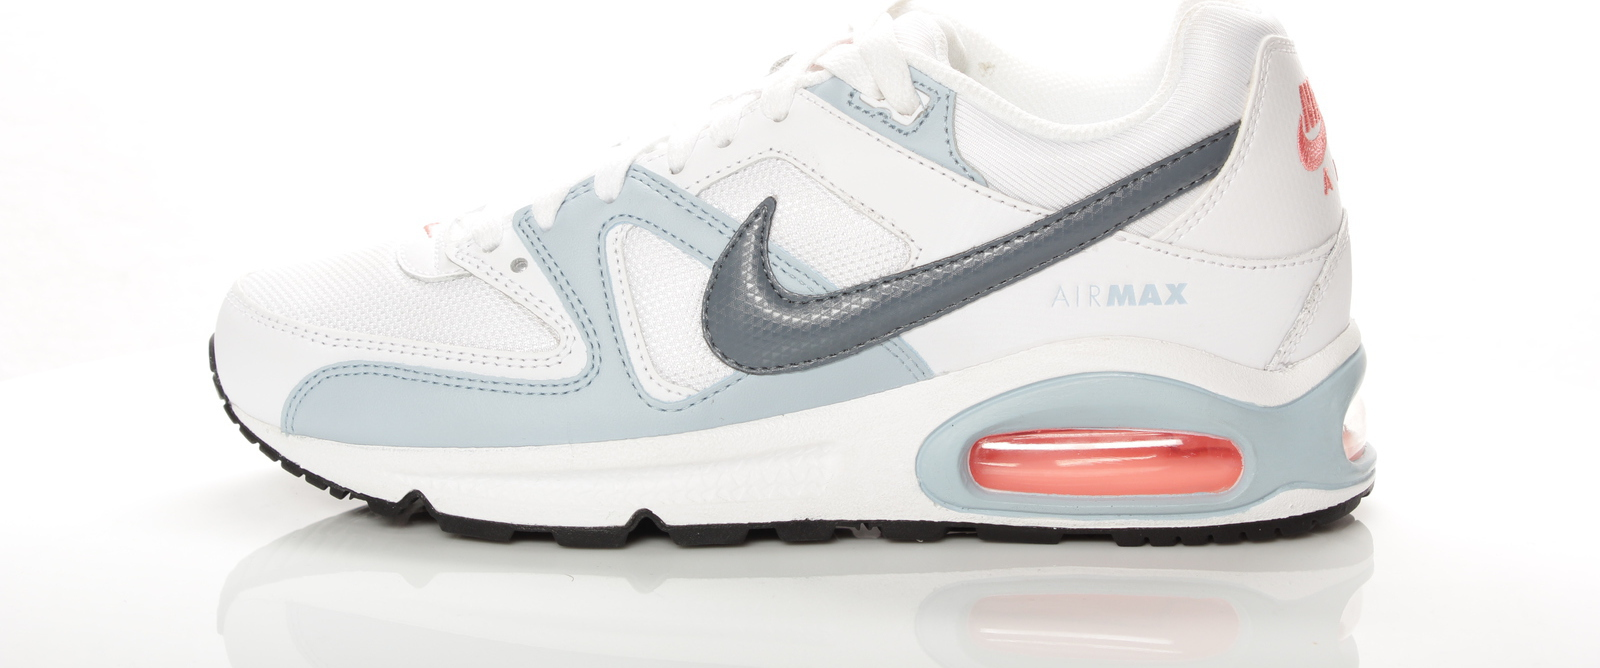 new style 74acb 21540 ... where to buy closeout menu nike air max command 397690 144 548d0 5930d  2731f 20eab